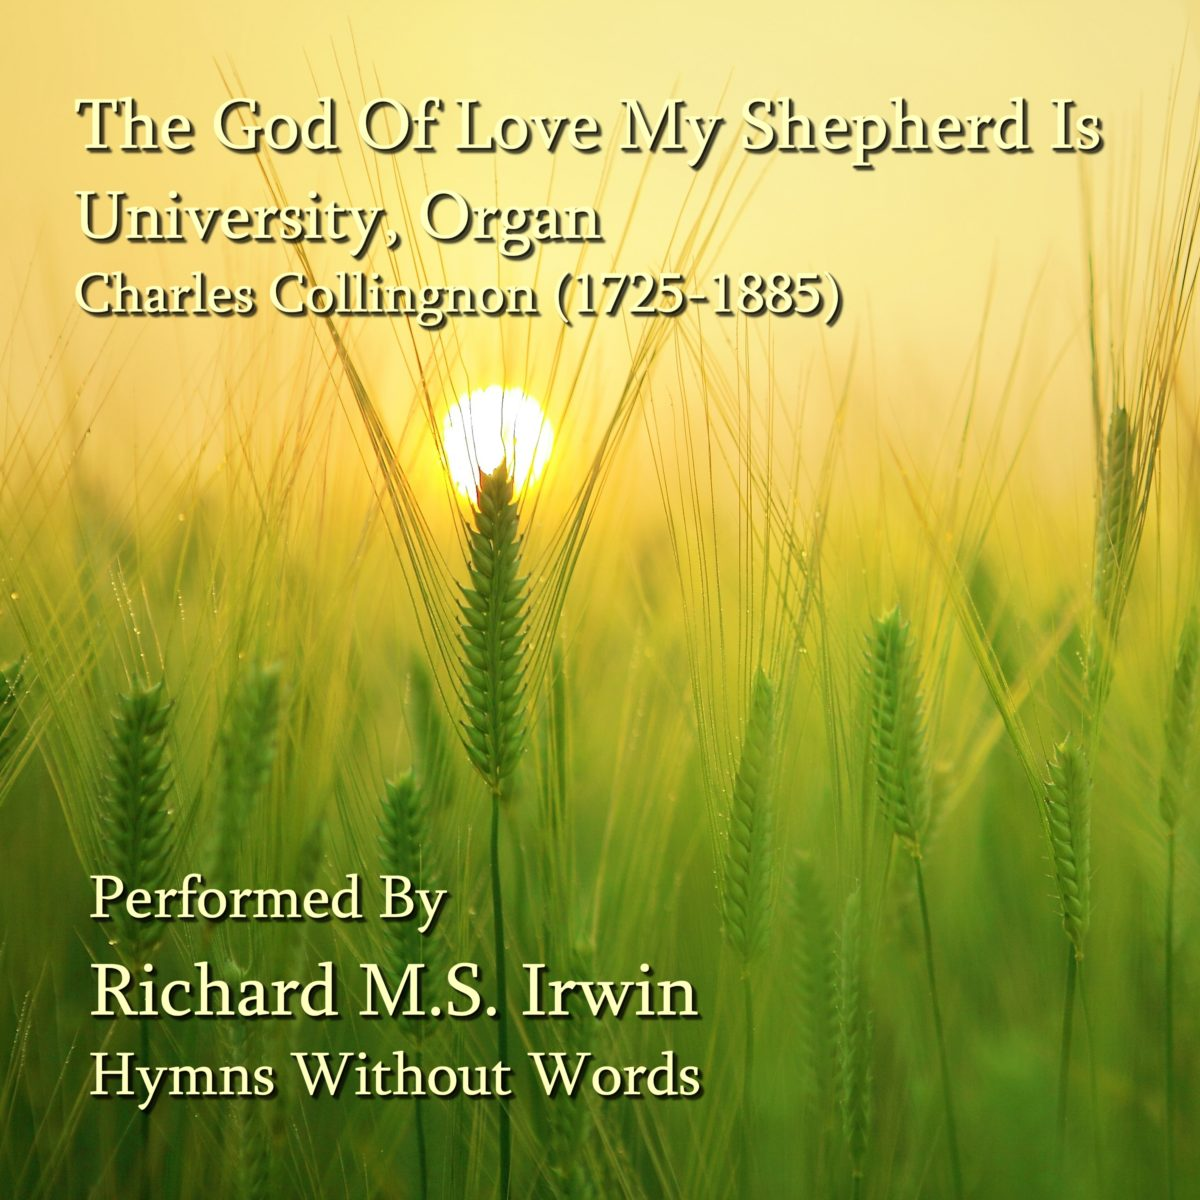 The God Of Love My Shepherd Is (University, Organ, 5 Verses)